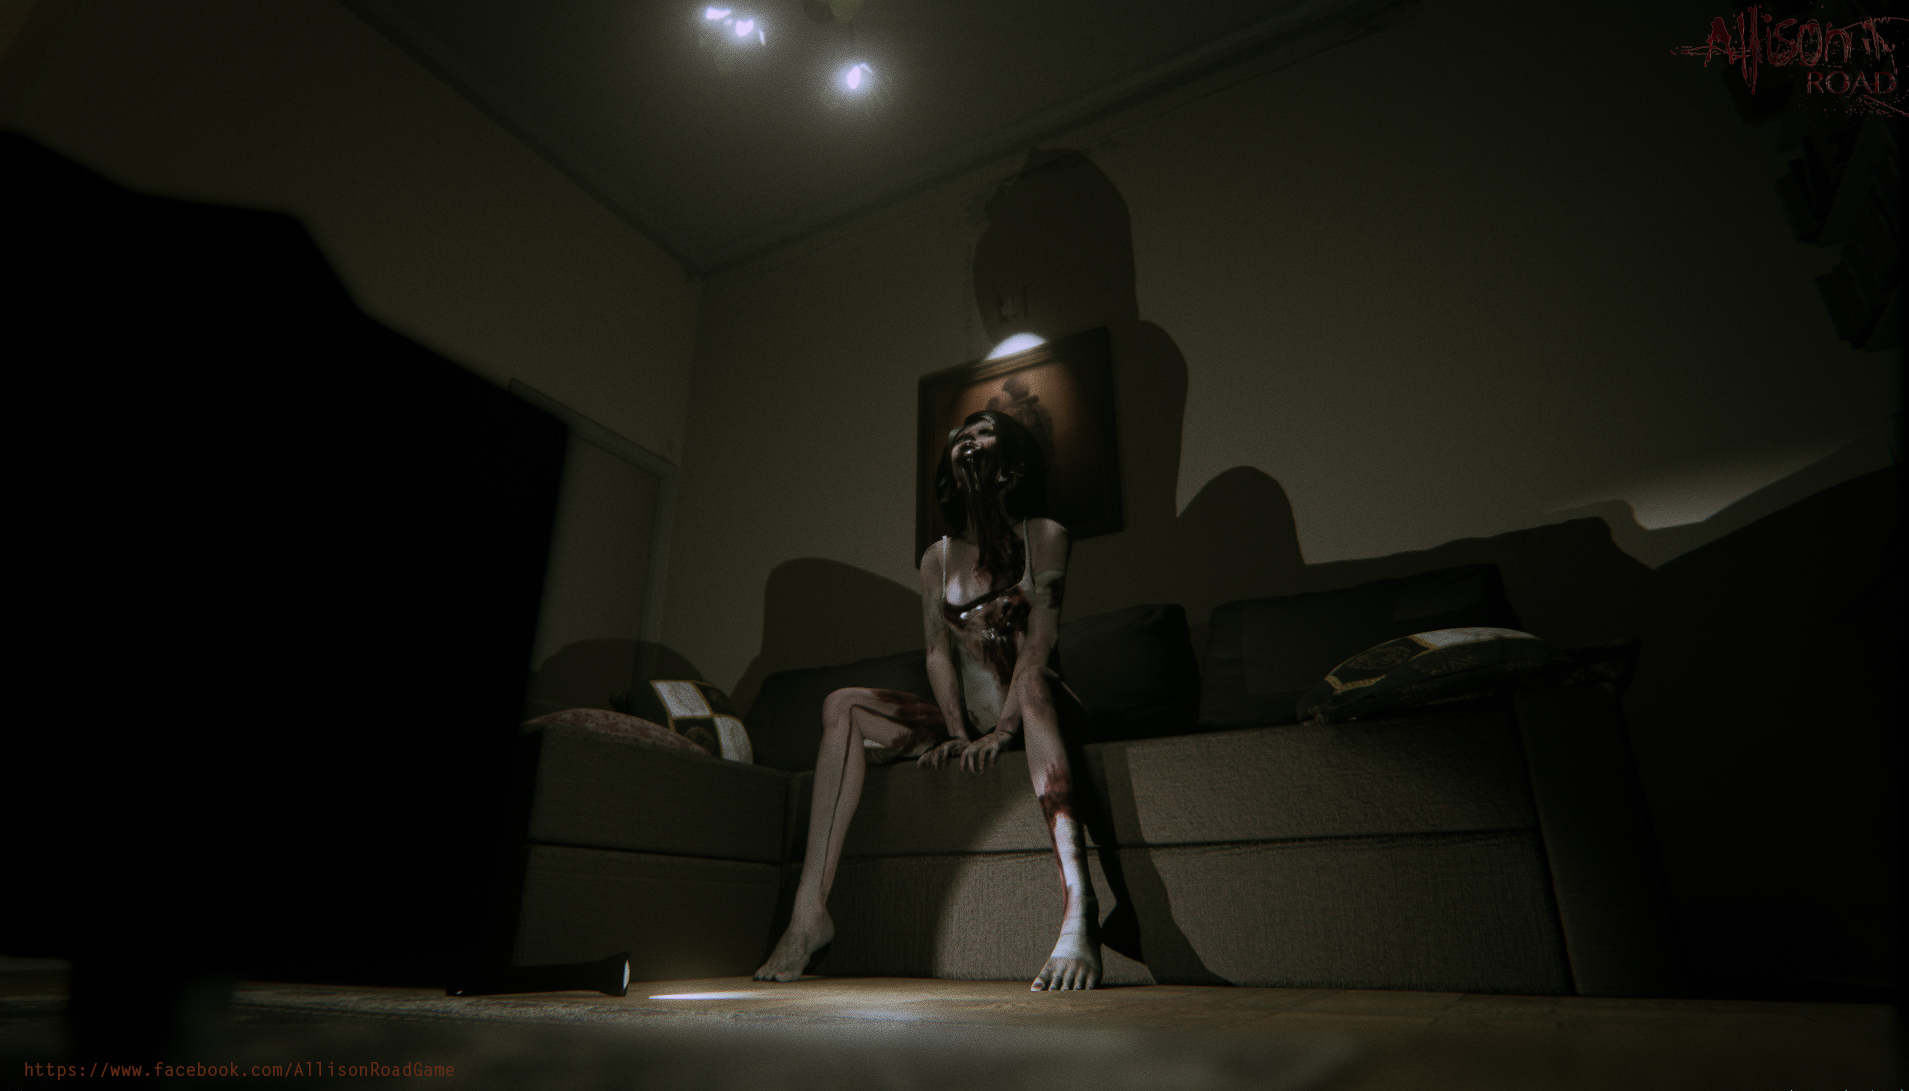 """Allison Road"" Joins Publisher Team17 - Drops Kickstarter for Publishing Company"